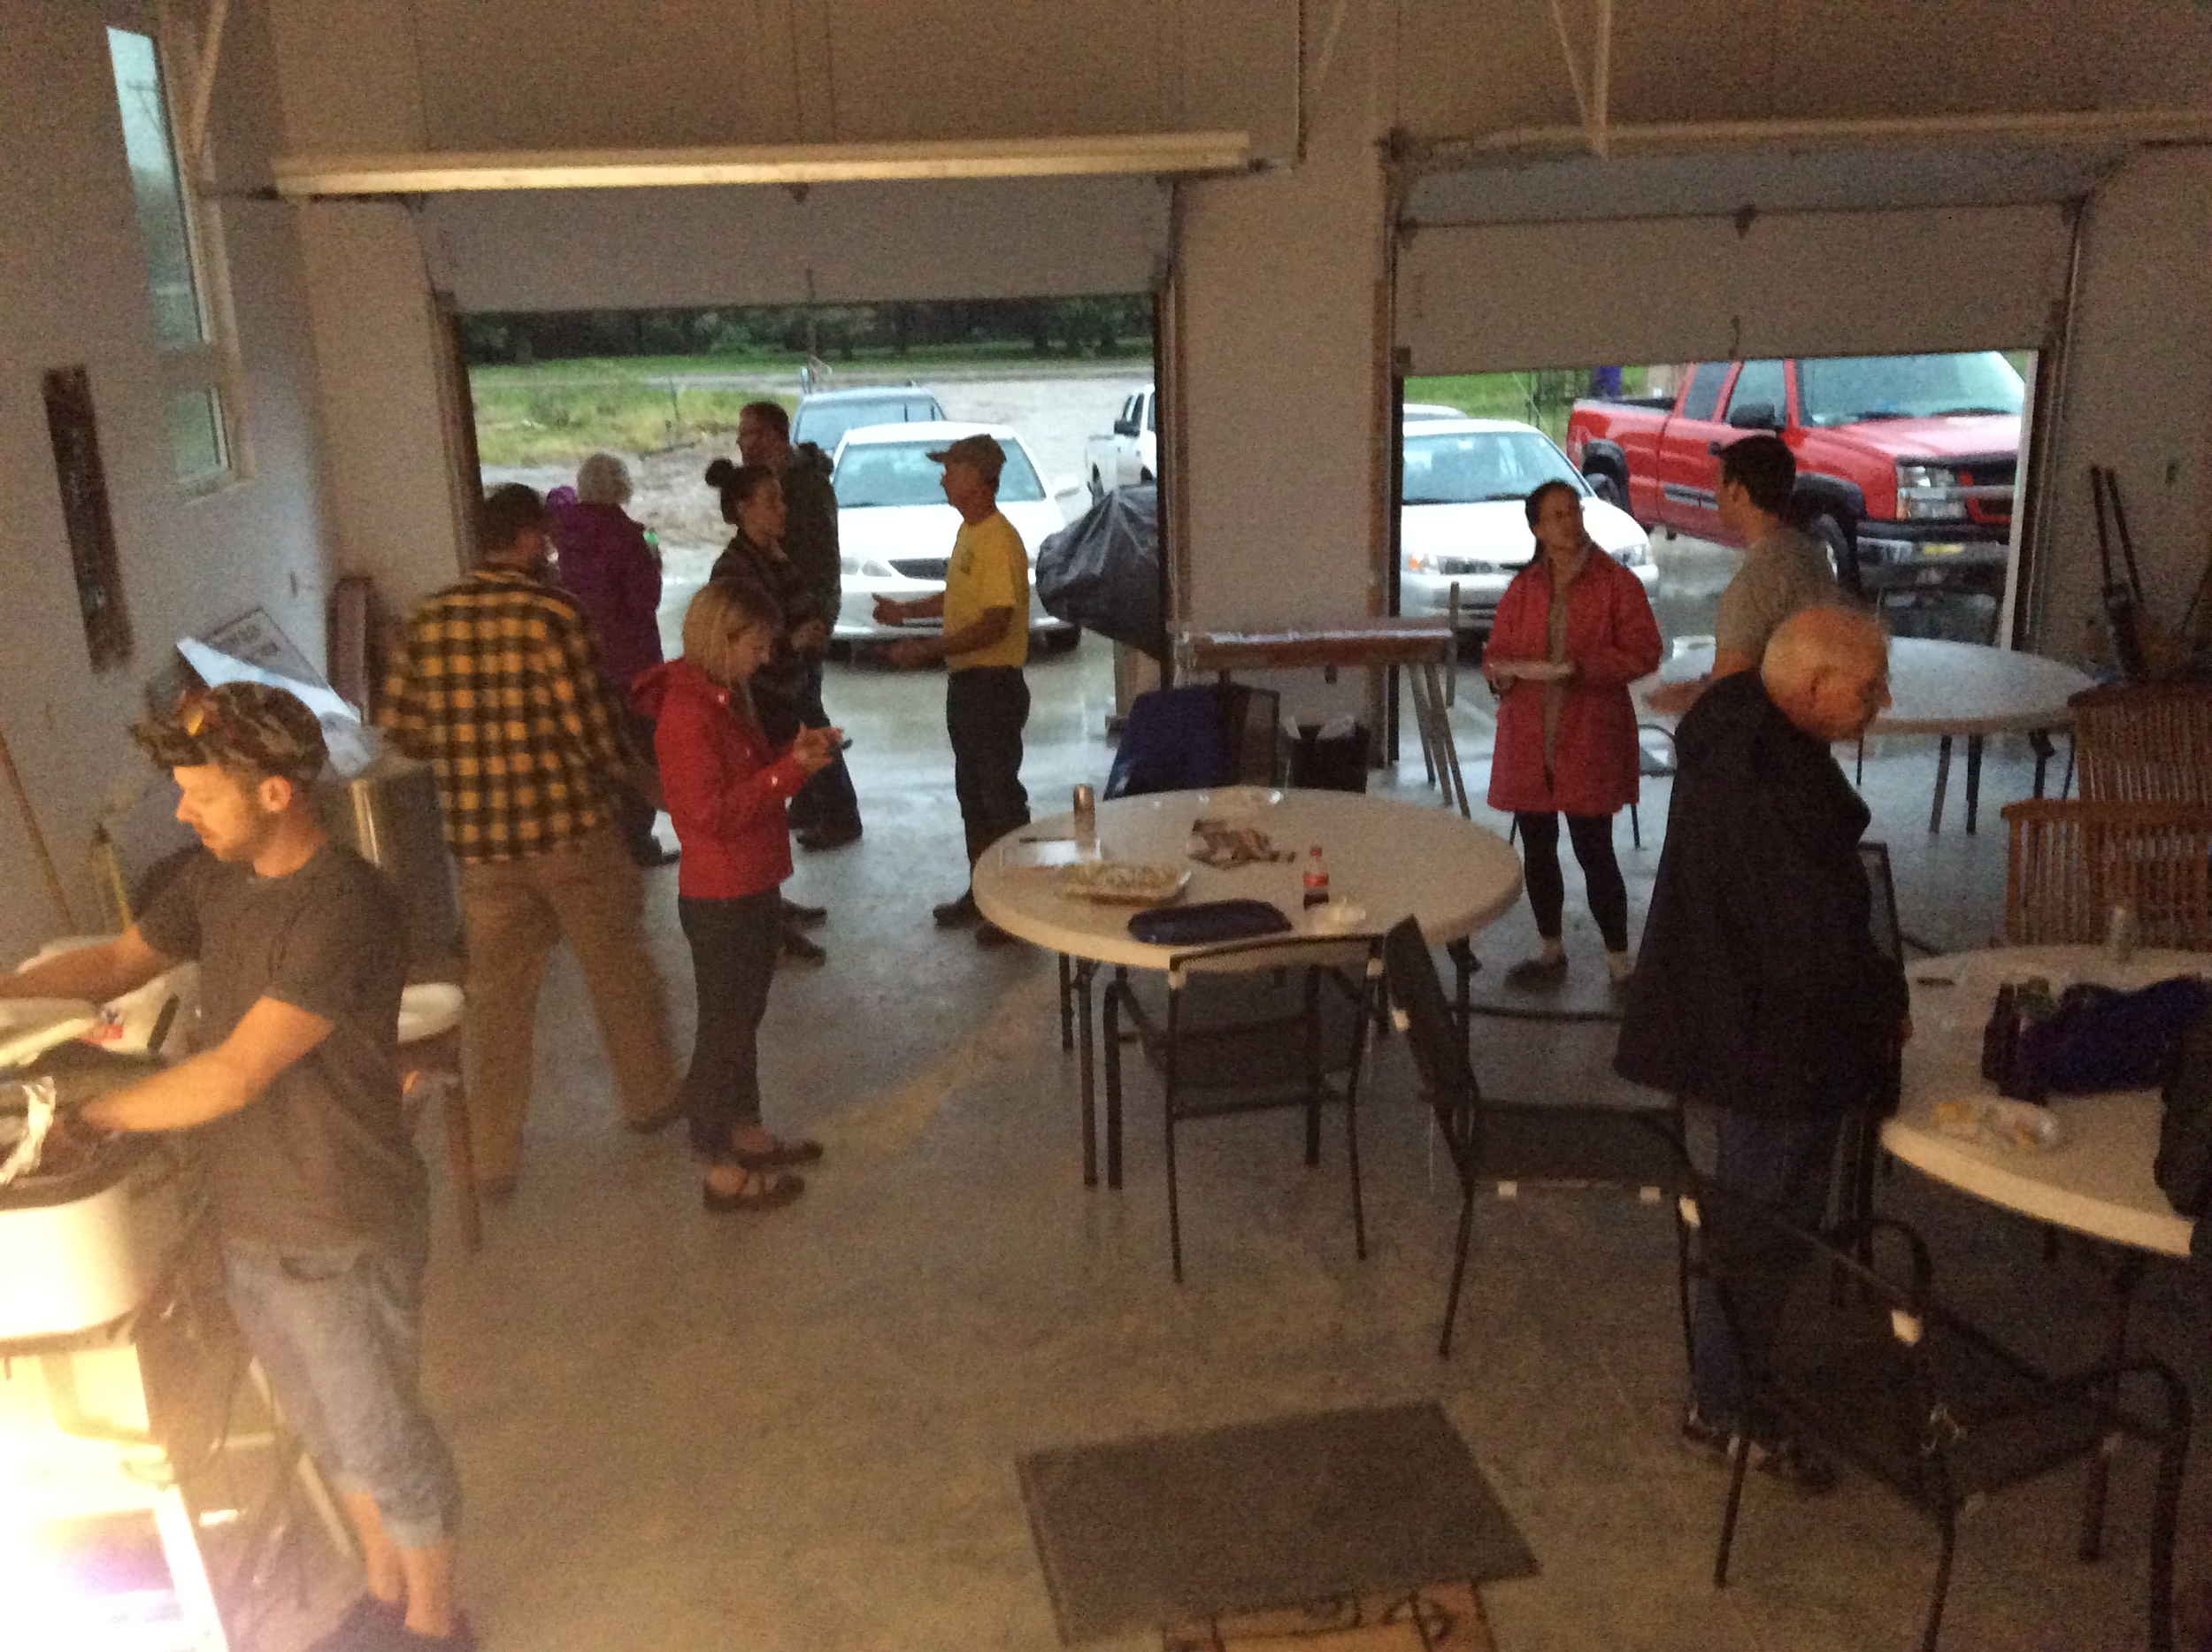 UA members stay high and dry in Ray's garage during the meet-up. He was kind enough to provide dinner.